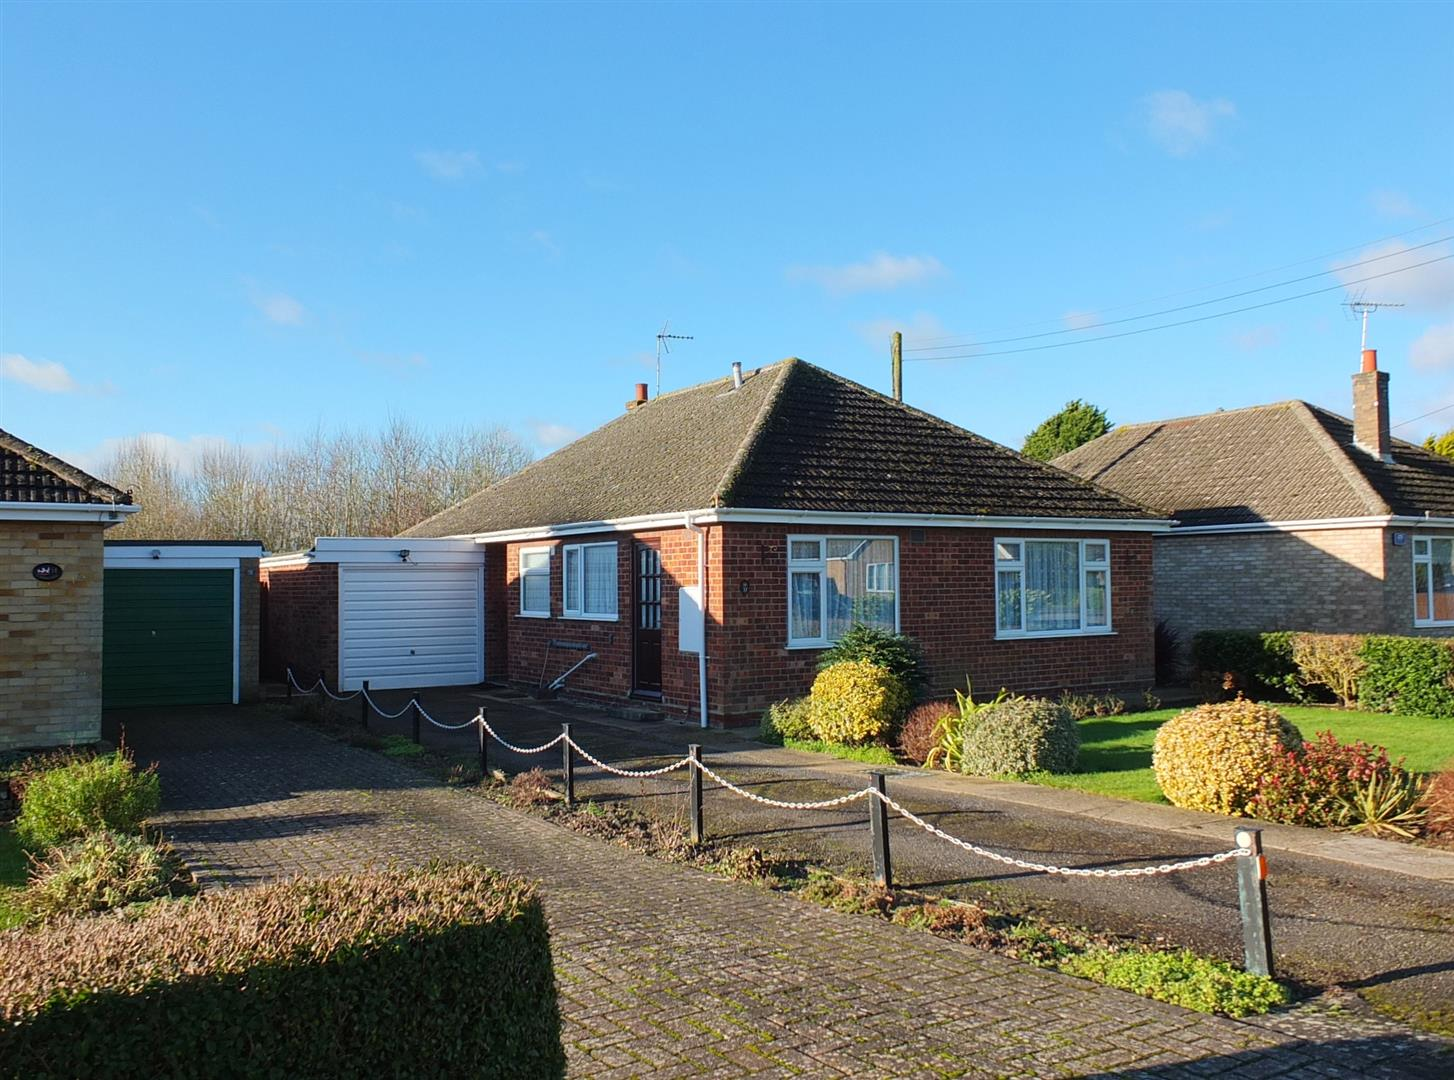 3 bed detached bungalow for sale in Garnsgate Road, Long Sutton Spalding, PE12